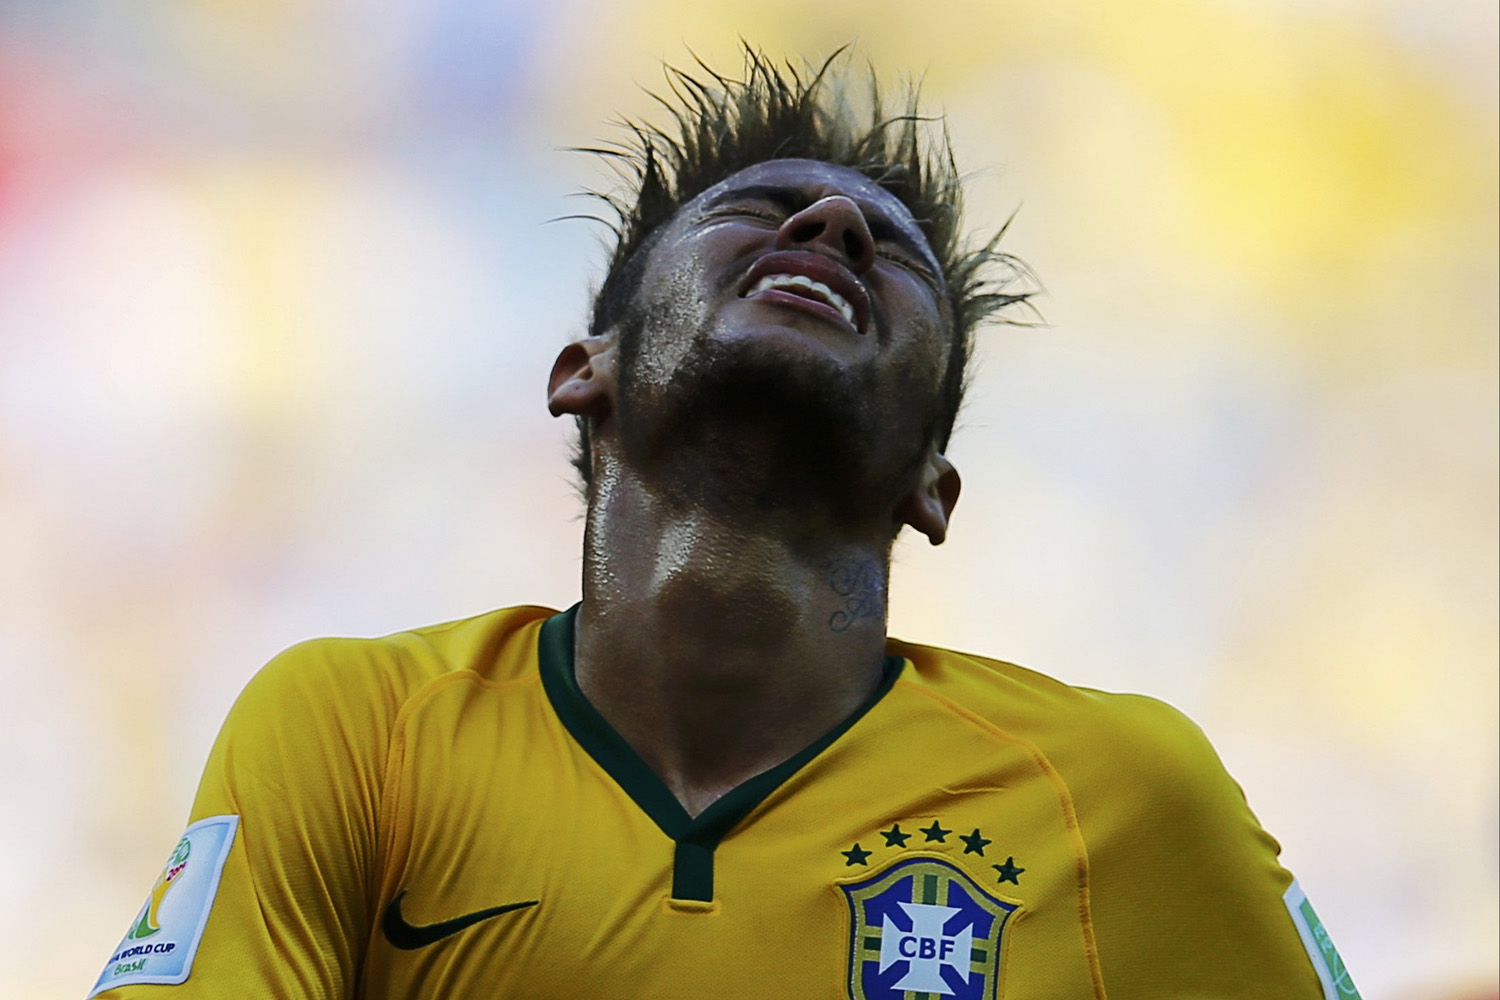 Jun. 28, 2014. Brazil's Neymar reacts during their 2014 World Cup round of 16 game against Chile at the Mineirao stadium in Belo Horizonte.